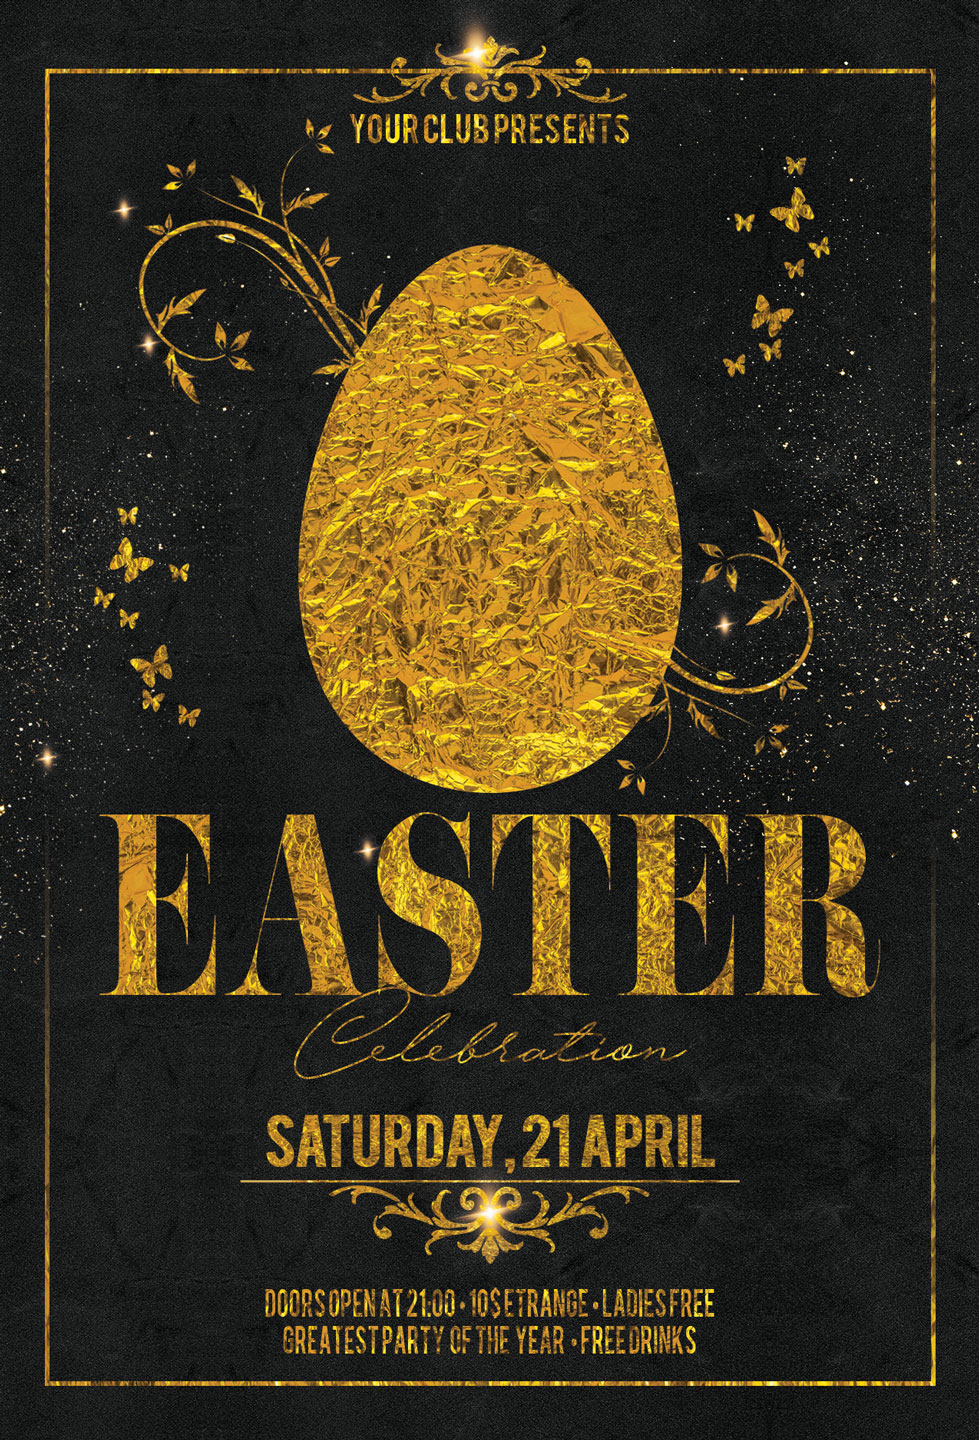 Happy Easter Party Flyer example image 3